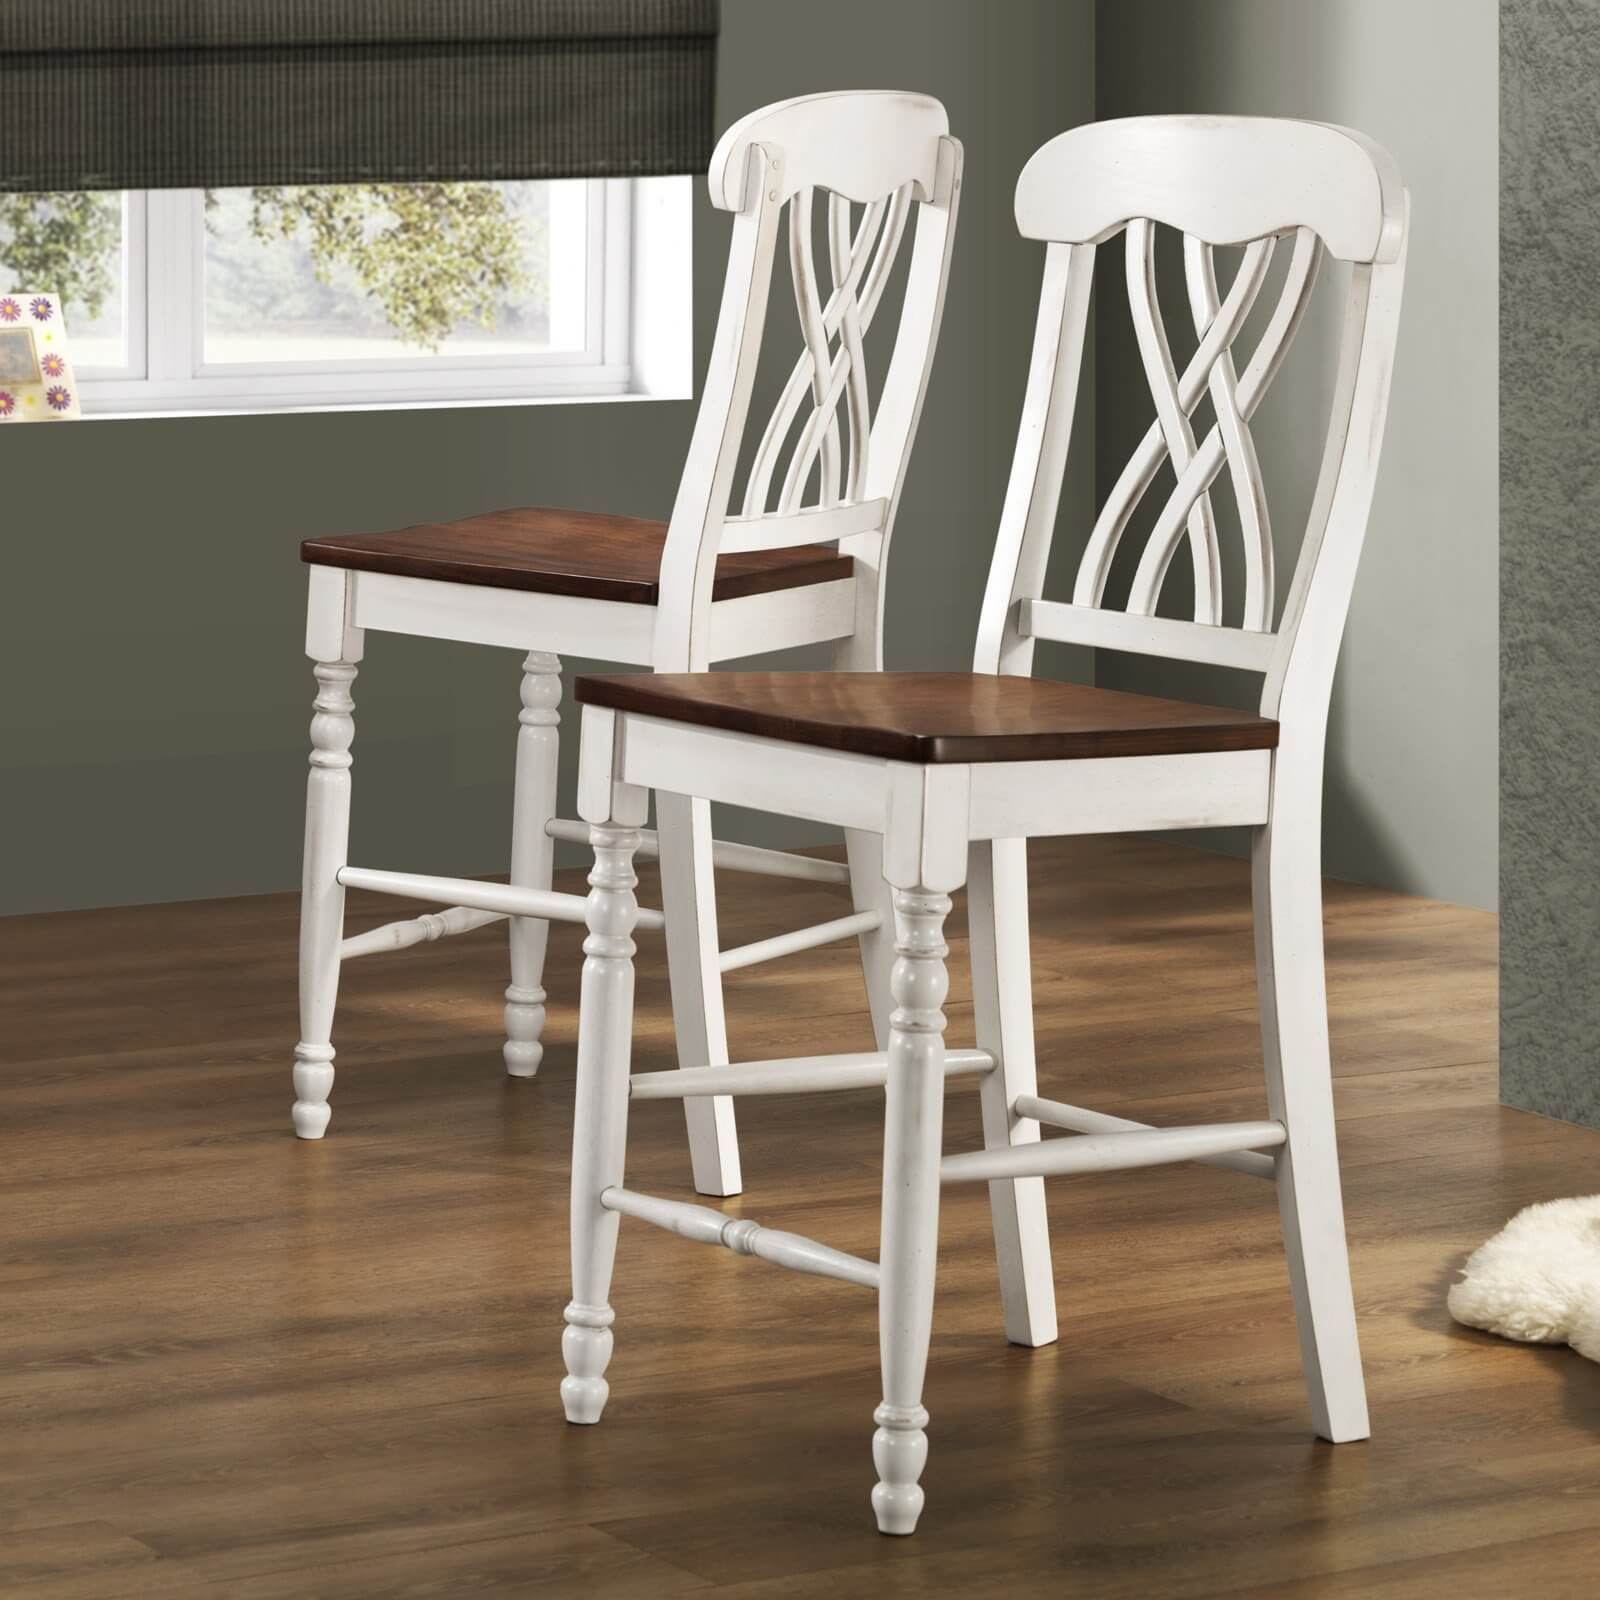 Pair of armless white cottage style stools with brown seats.